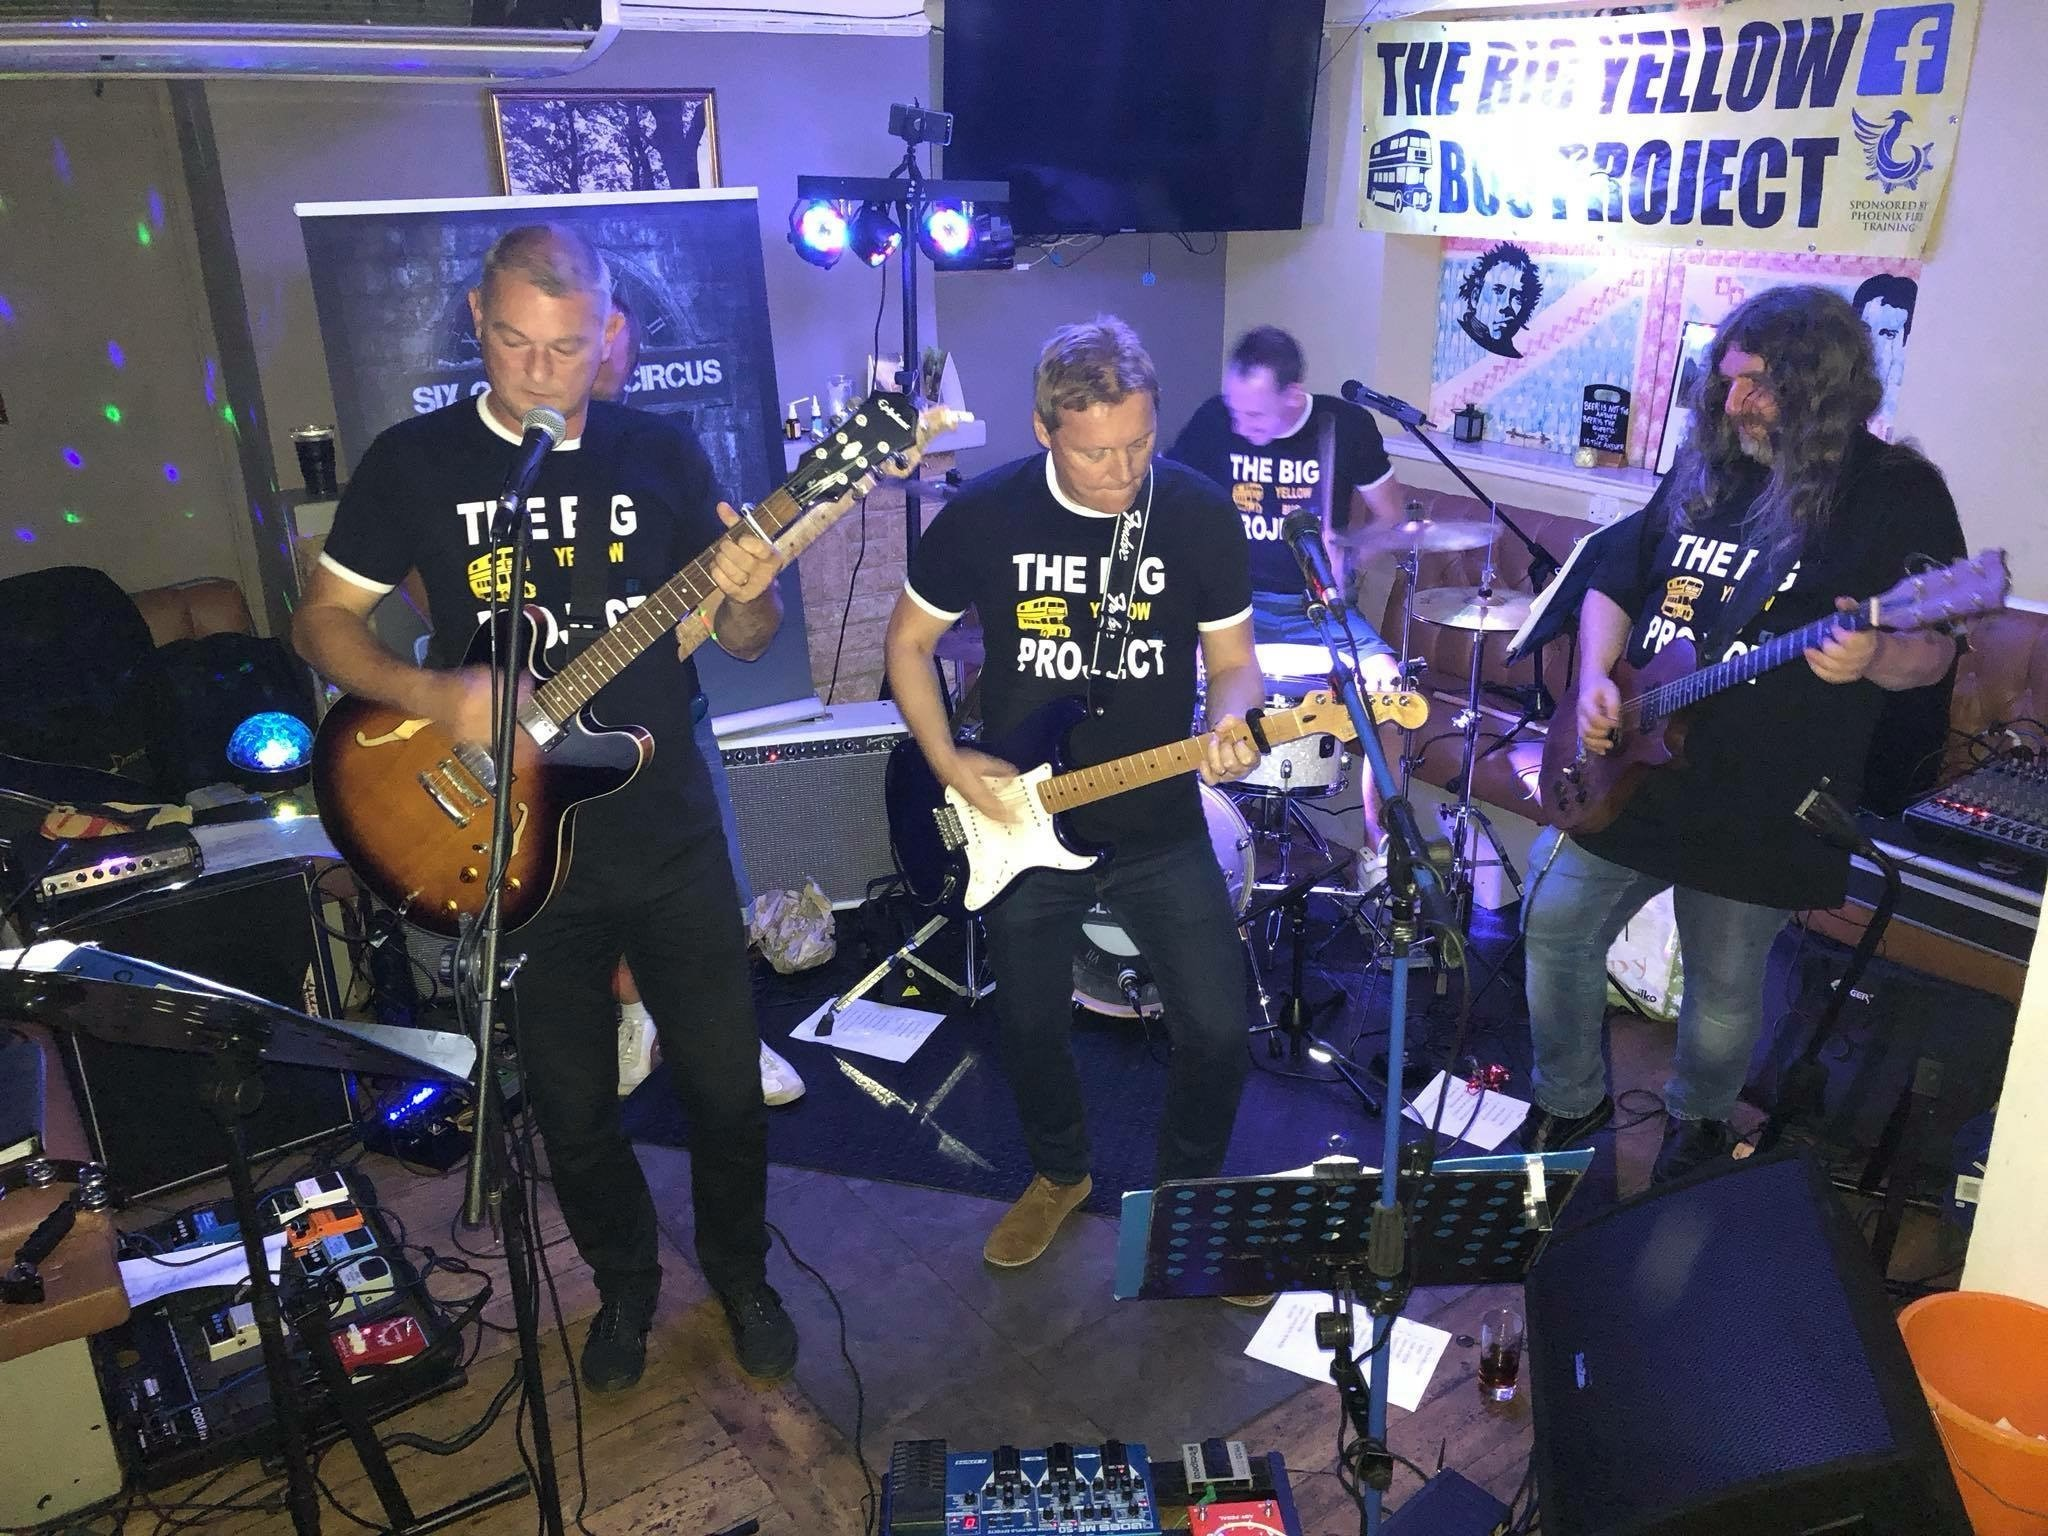 Calne based indie band Six O'clock Circus performed a charity gig at The Talbot Inn, raising money for The Big Yellow Bus Project